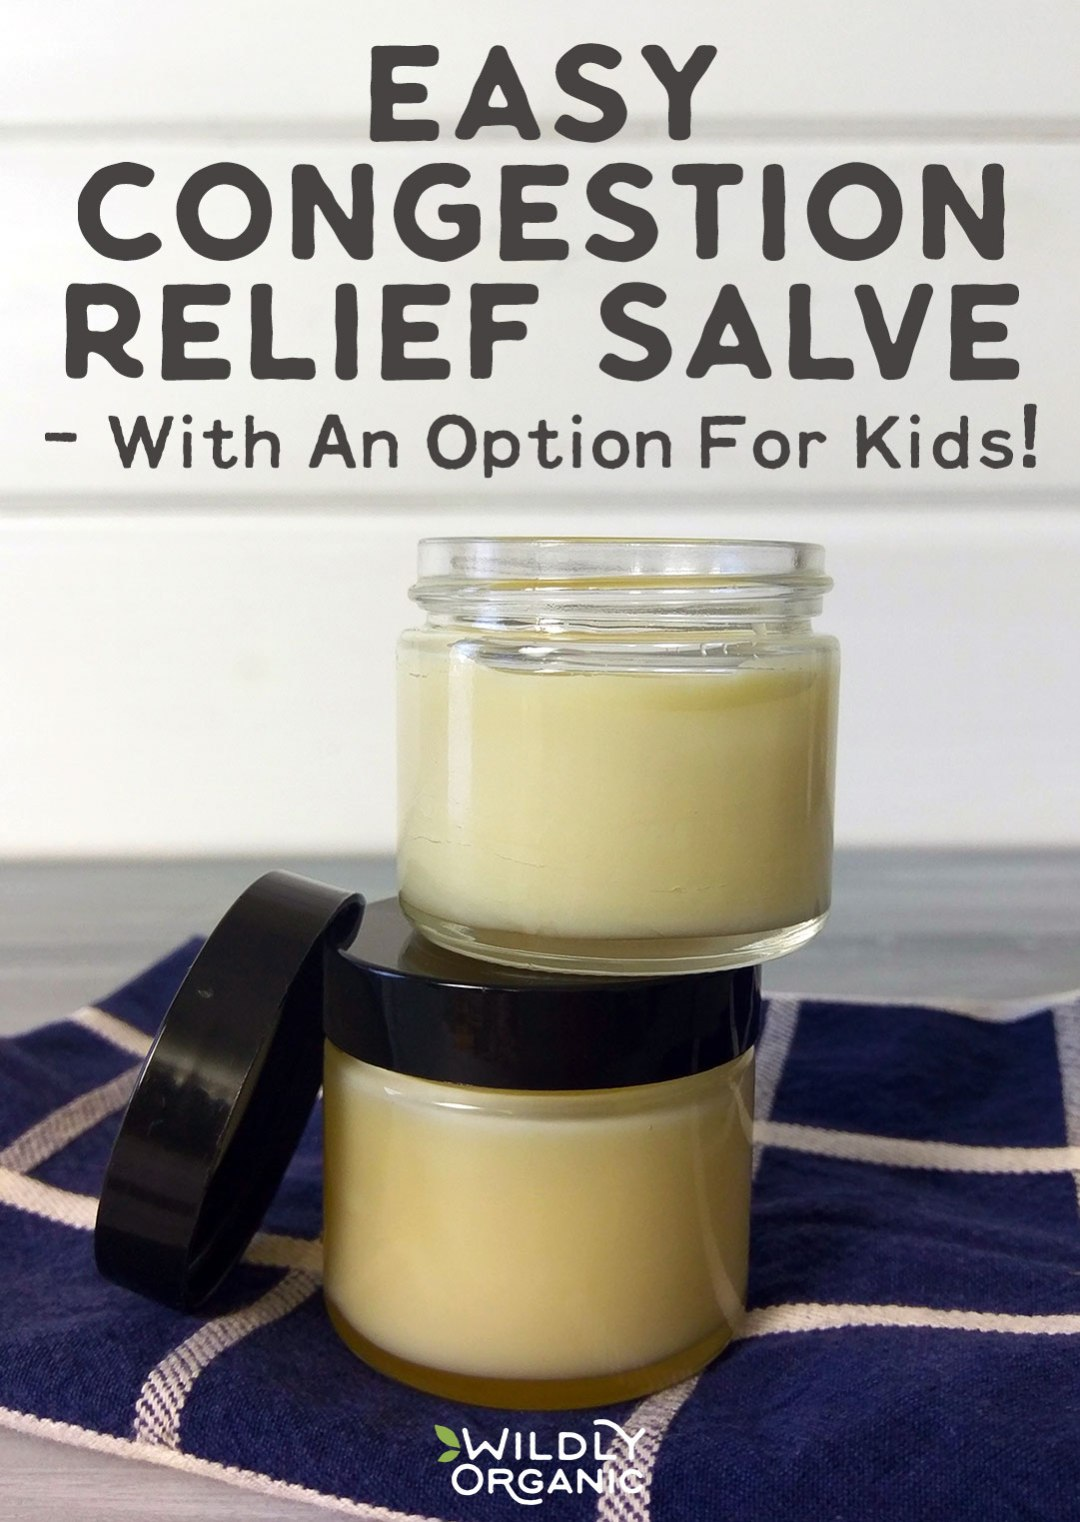 Photo of two jars filled with congestion relief salve.